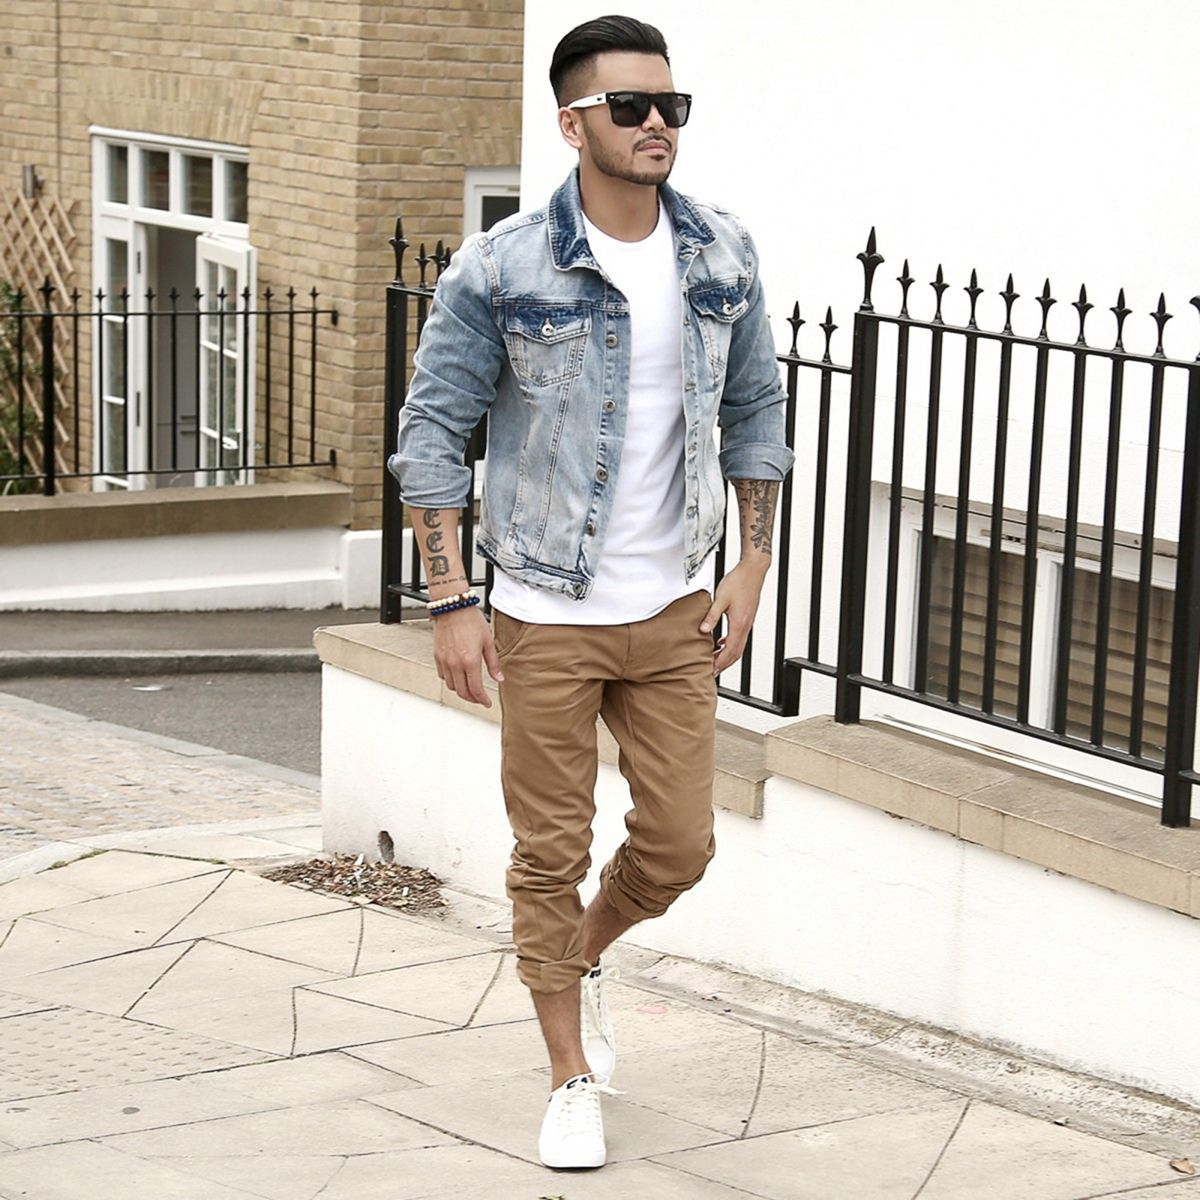 45 Awesome Jeans Jackets Ideas For Men Look Cooler Fashions Nowadays Denim Jacket Men Mens Outfits Chinos Men Outfit [ 1200 x 1200 Pixel ]